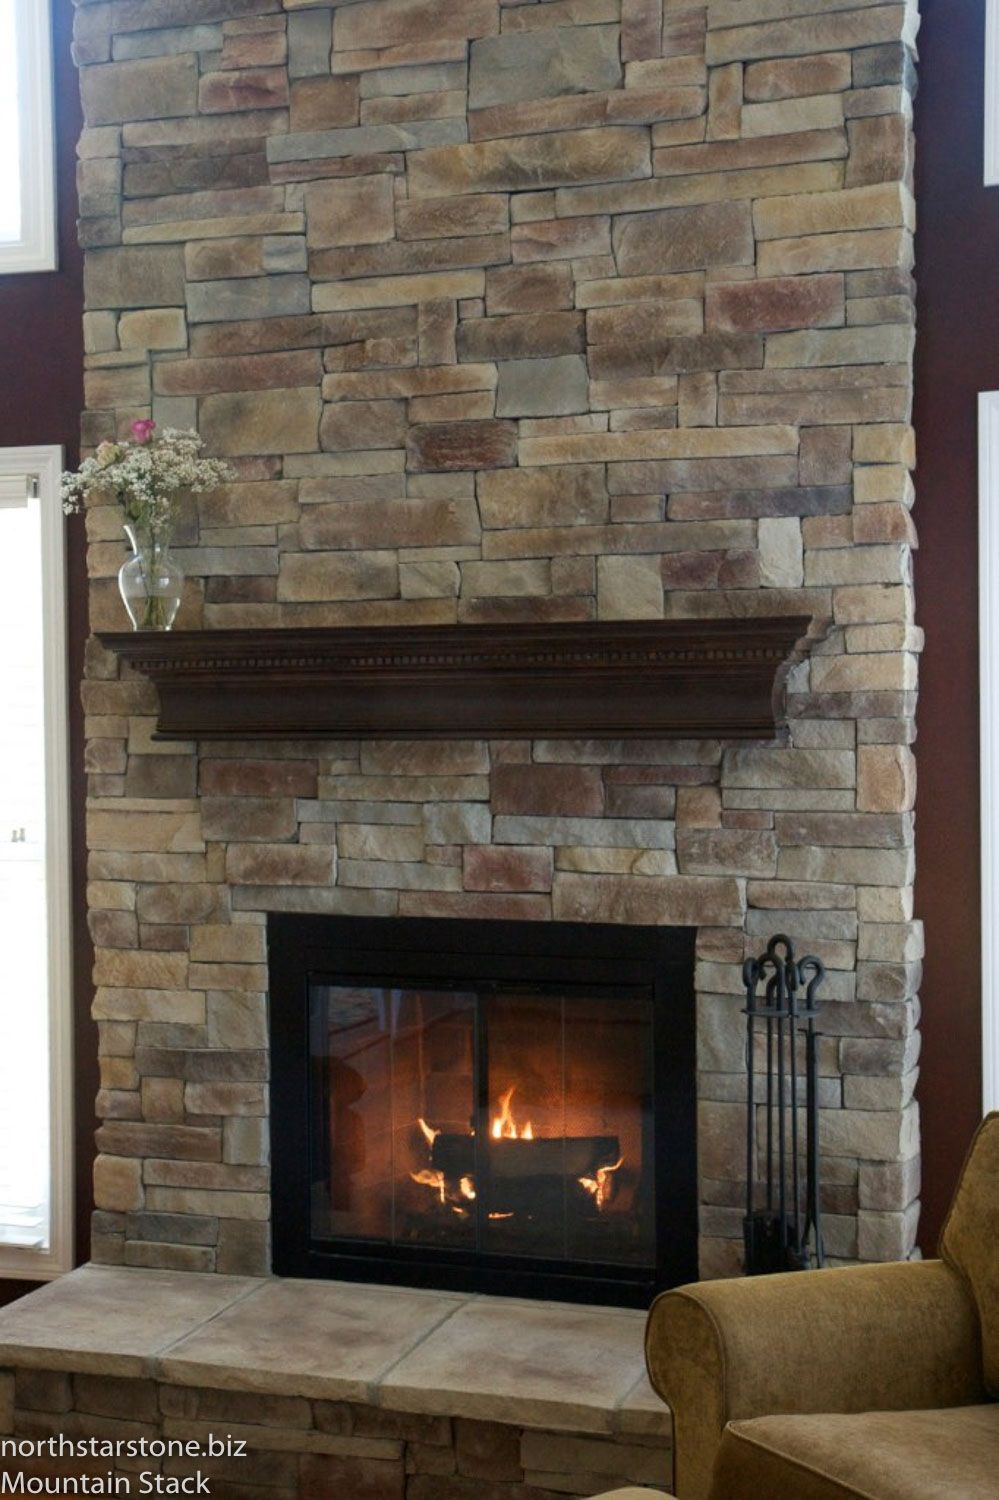 North Star Stone Stone Fireplaces Stone Exteriors: Mountain Stack Stone Veneer Fireplace Gallery